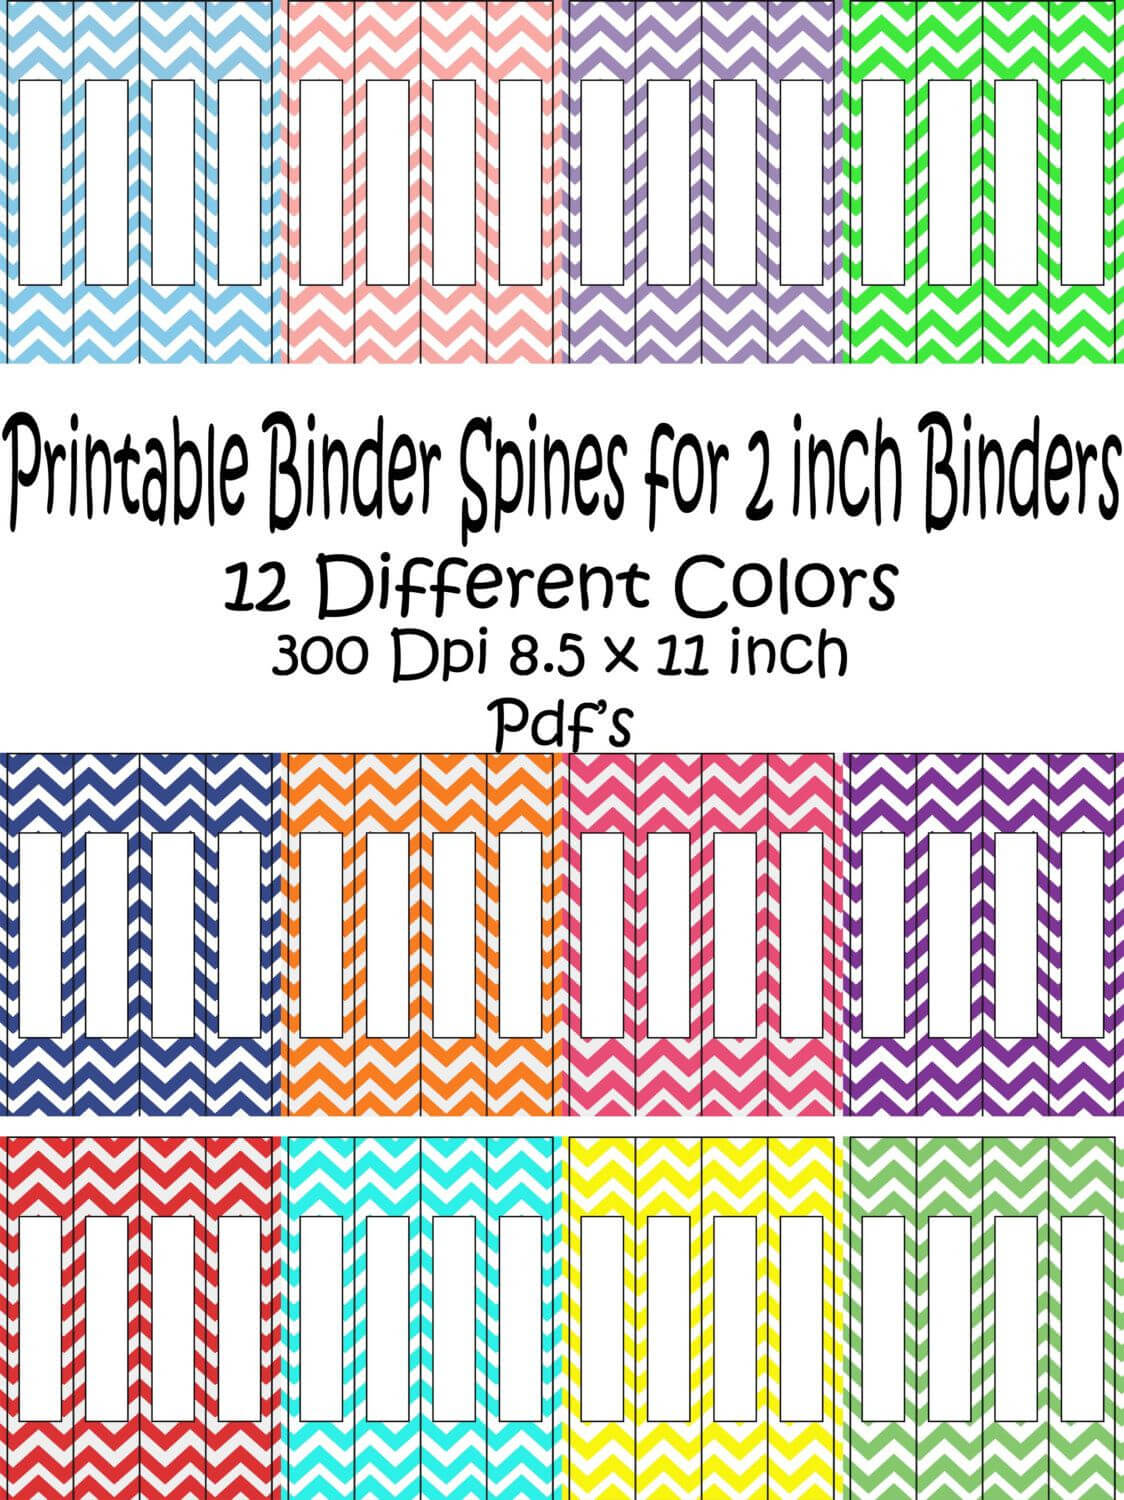 Printable Binder Spine Pack Size 2 Inch 12 Different Colors Regarding 3 Inch Binder Spine Template Word